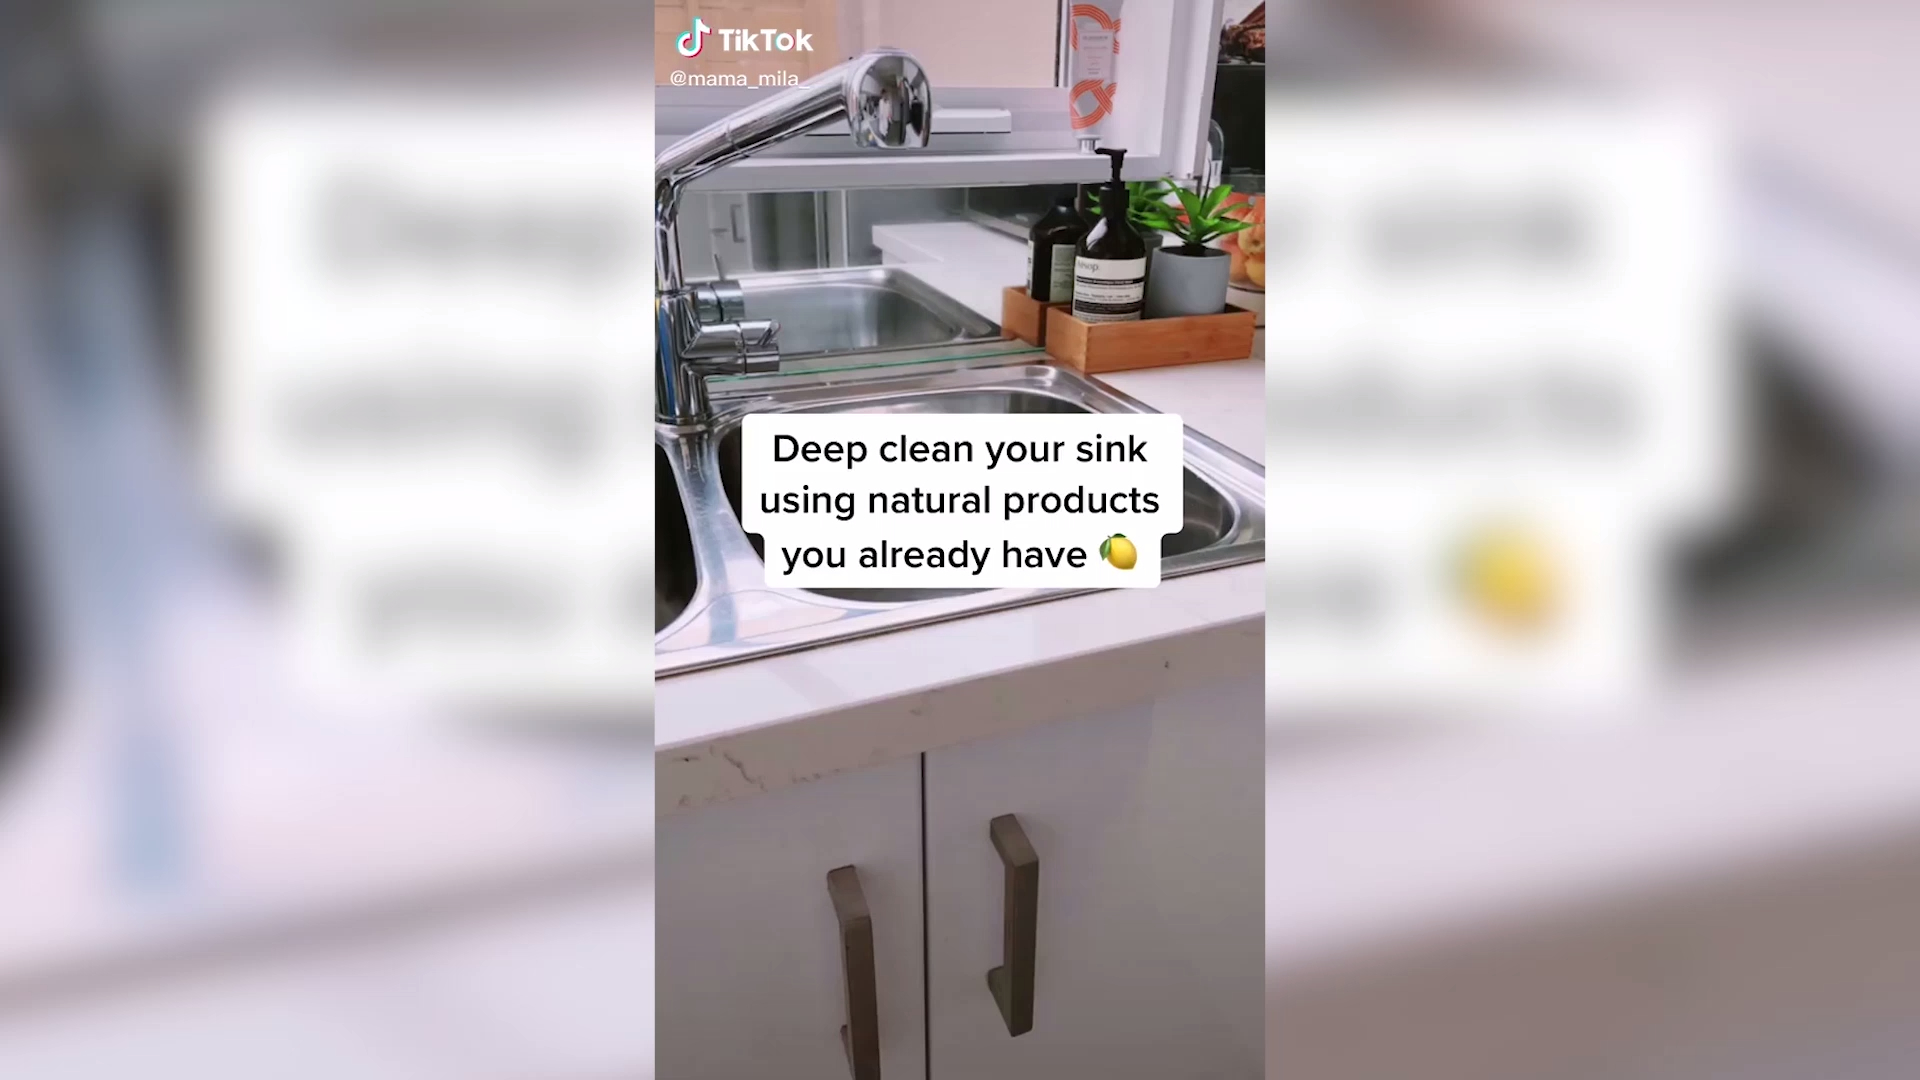 Sink cleaning hack with natural ingredients